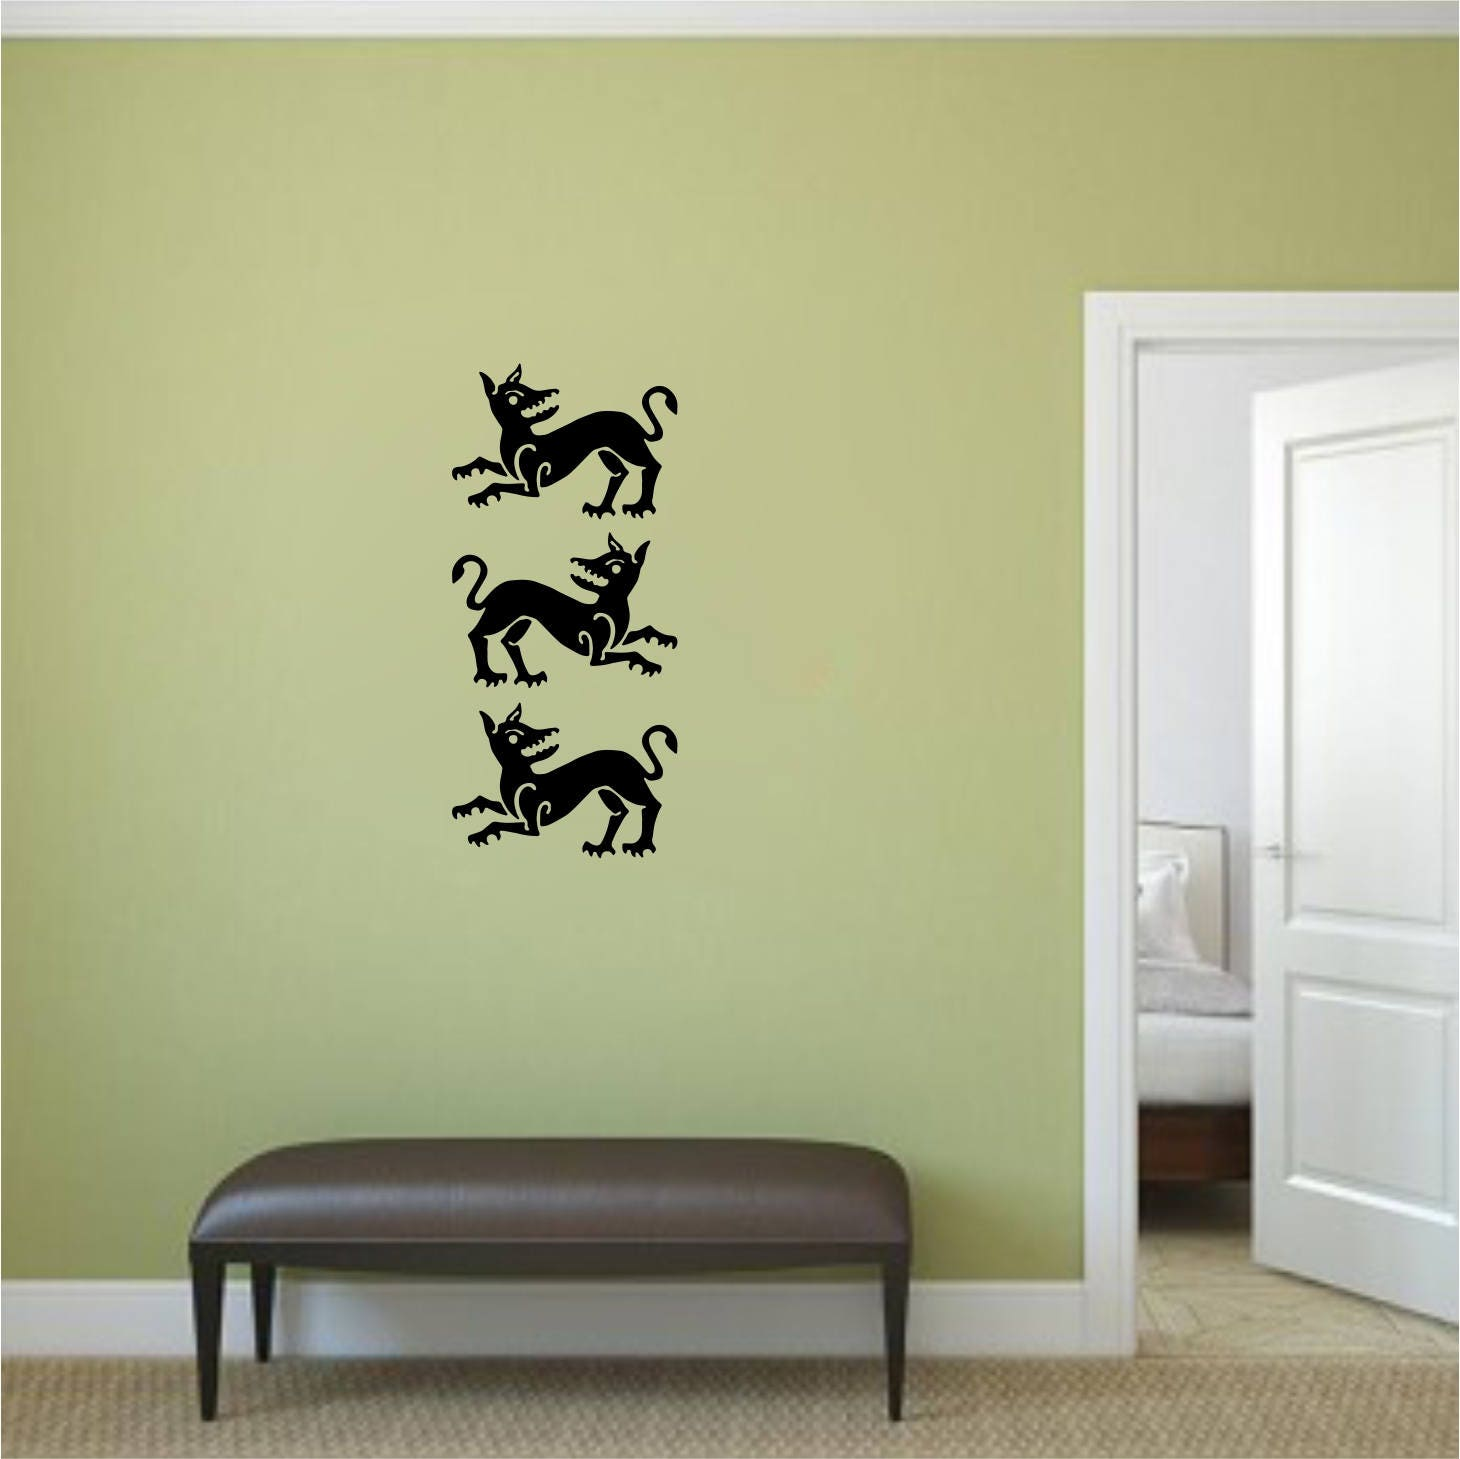 Game of Thrones House Clegant Wall Decal - Wall Sticker for Room ...